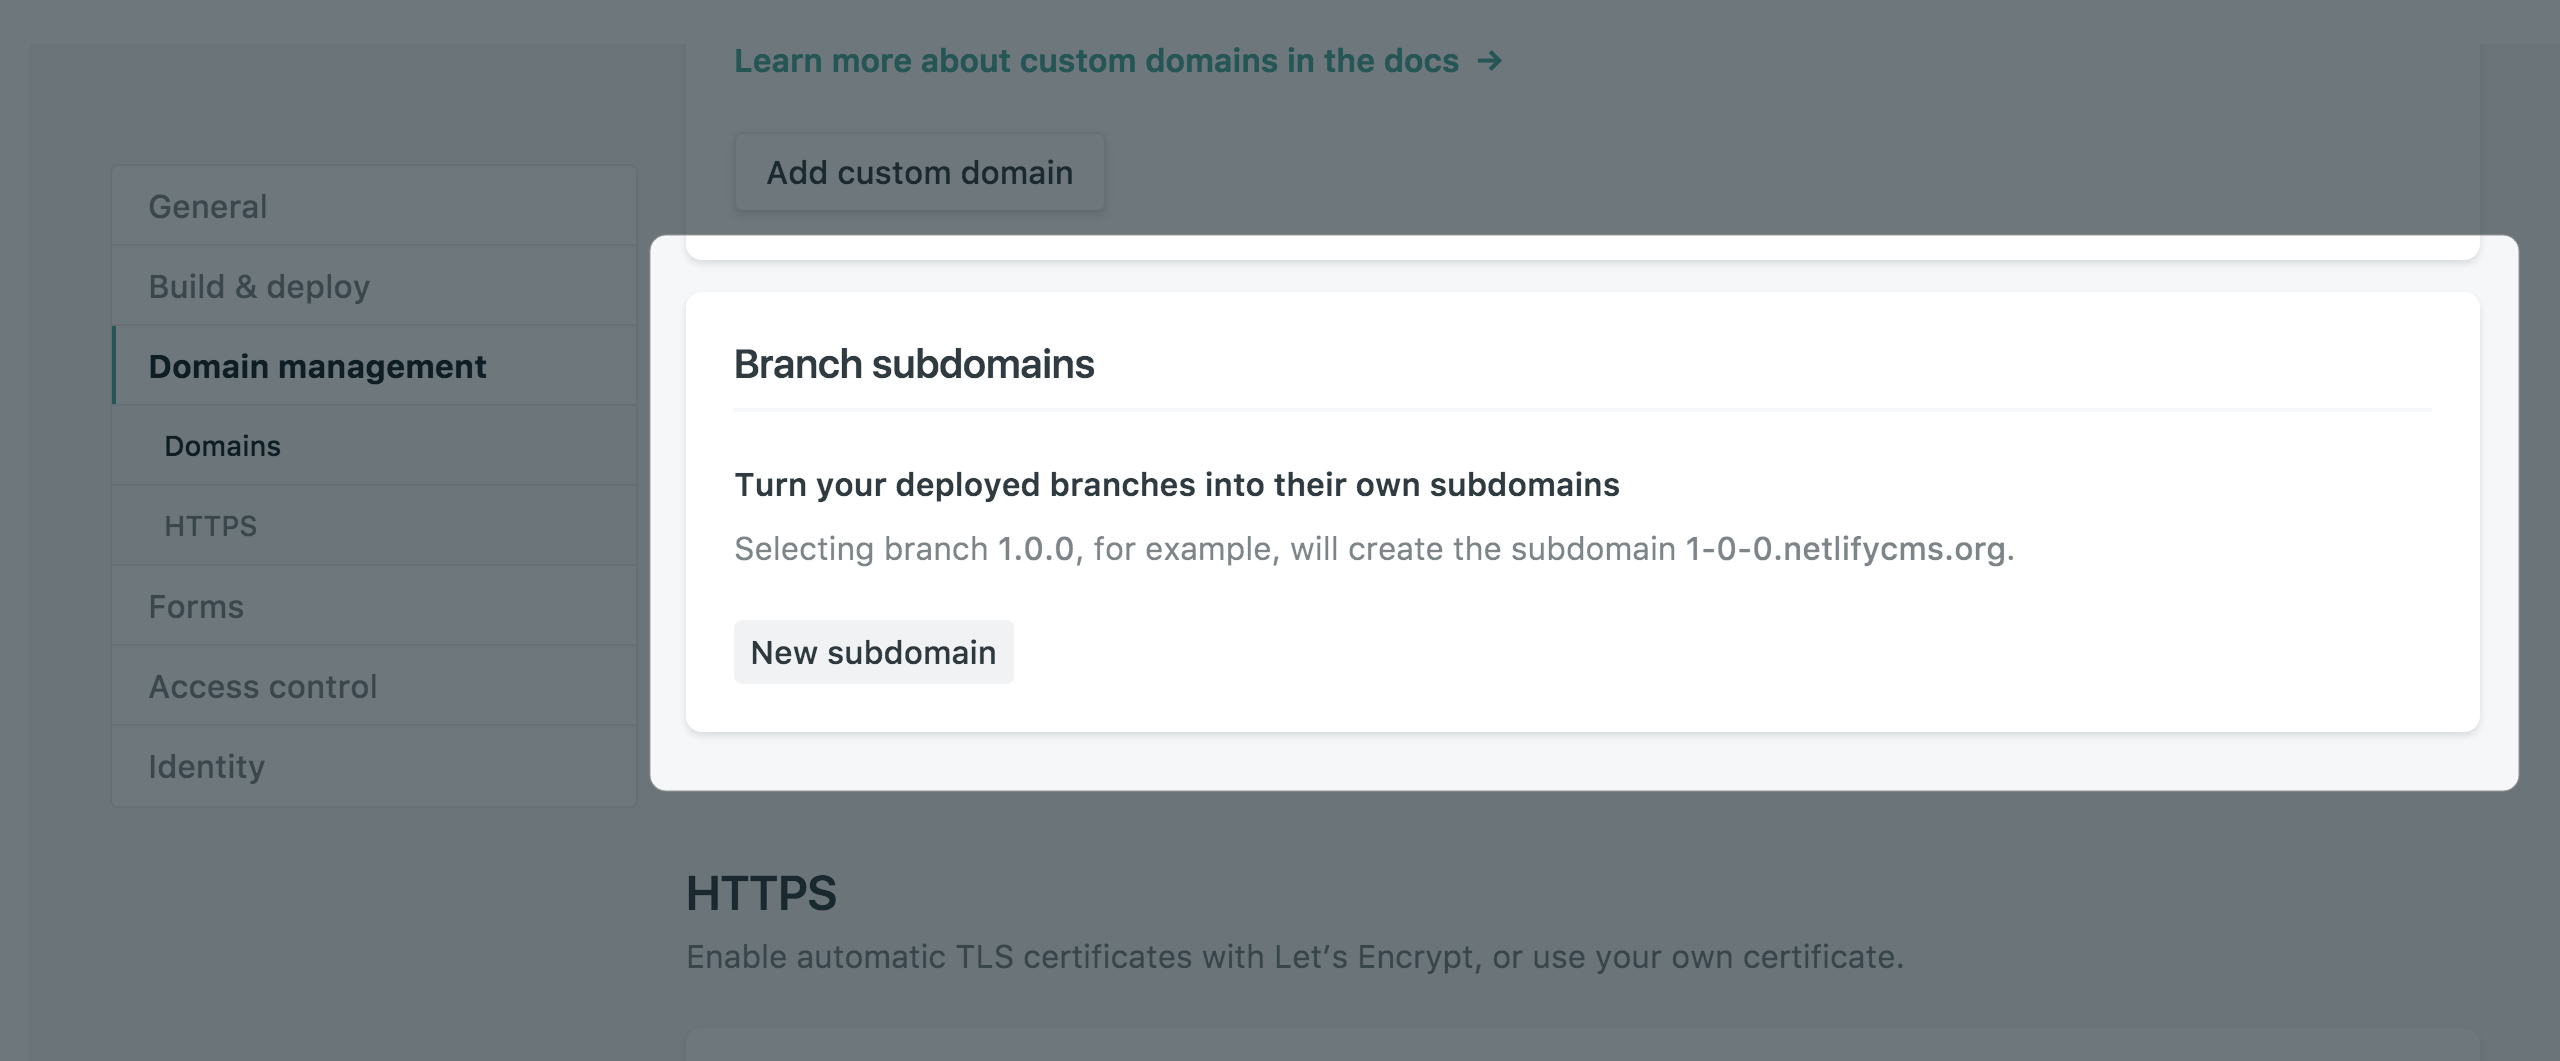 Branch subdomains panel with no branch subdomains selected yet